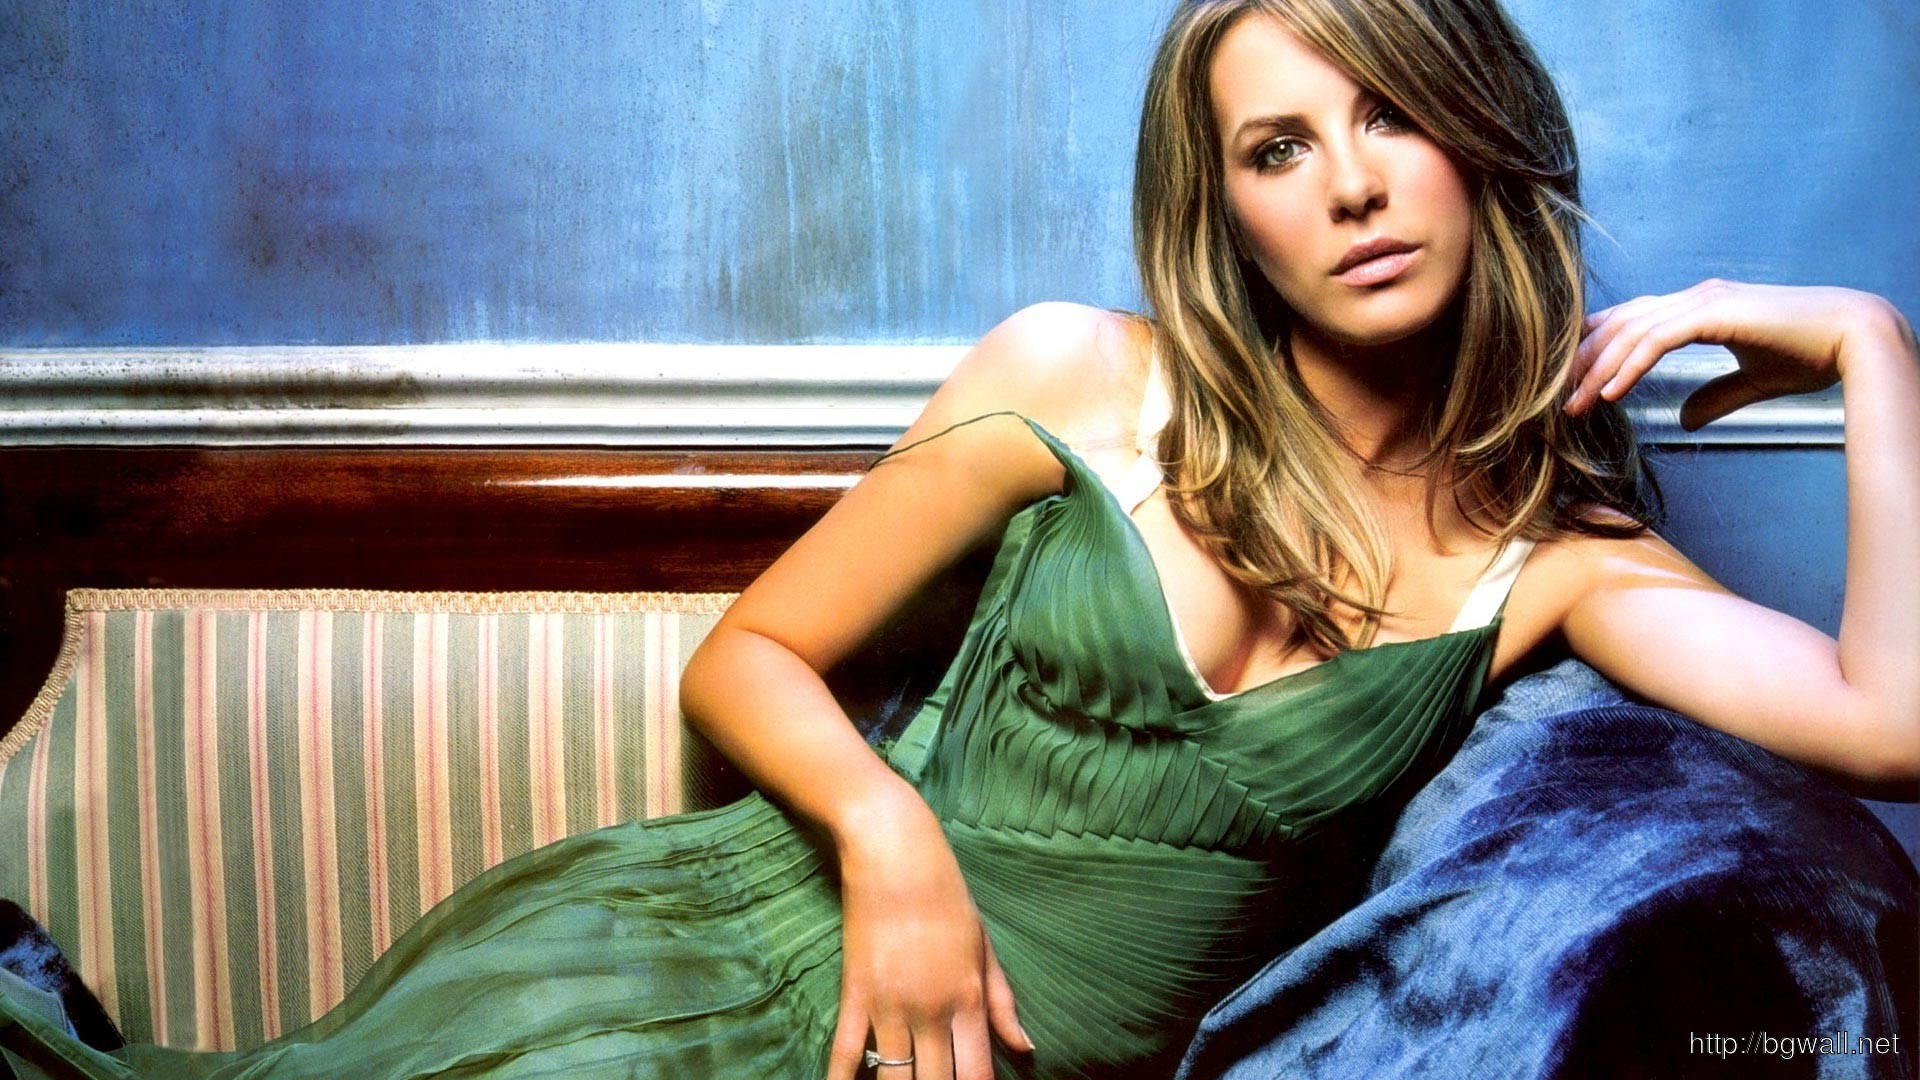 Kate Beckinsale on Sofa Pose Wallpaper